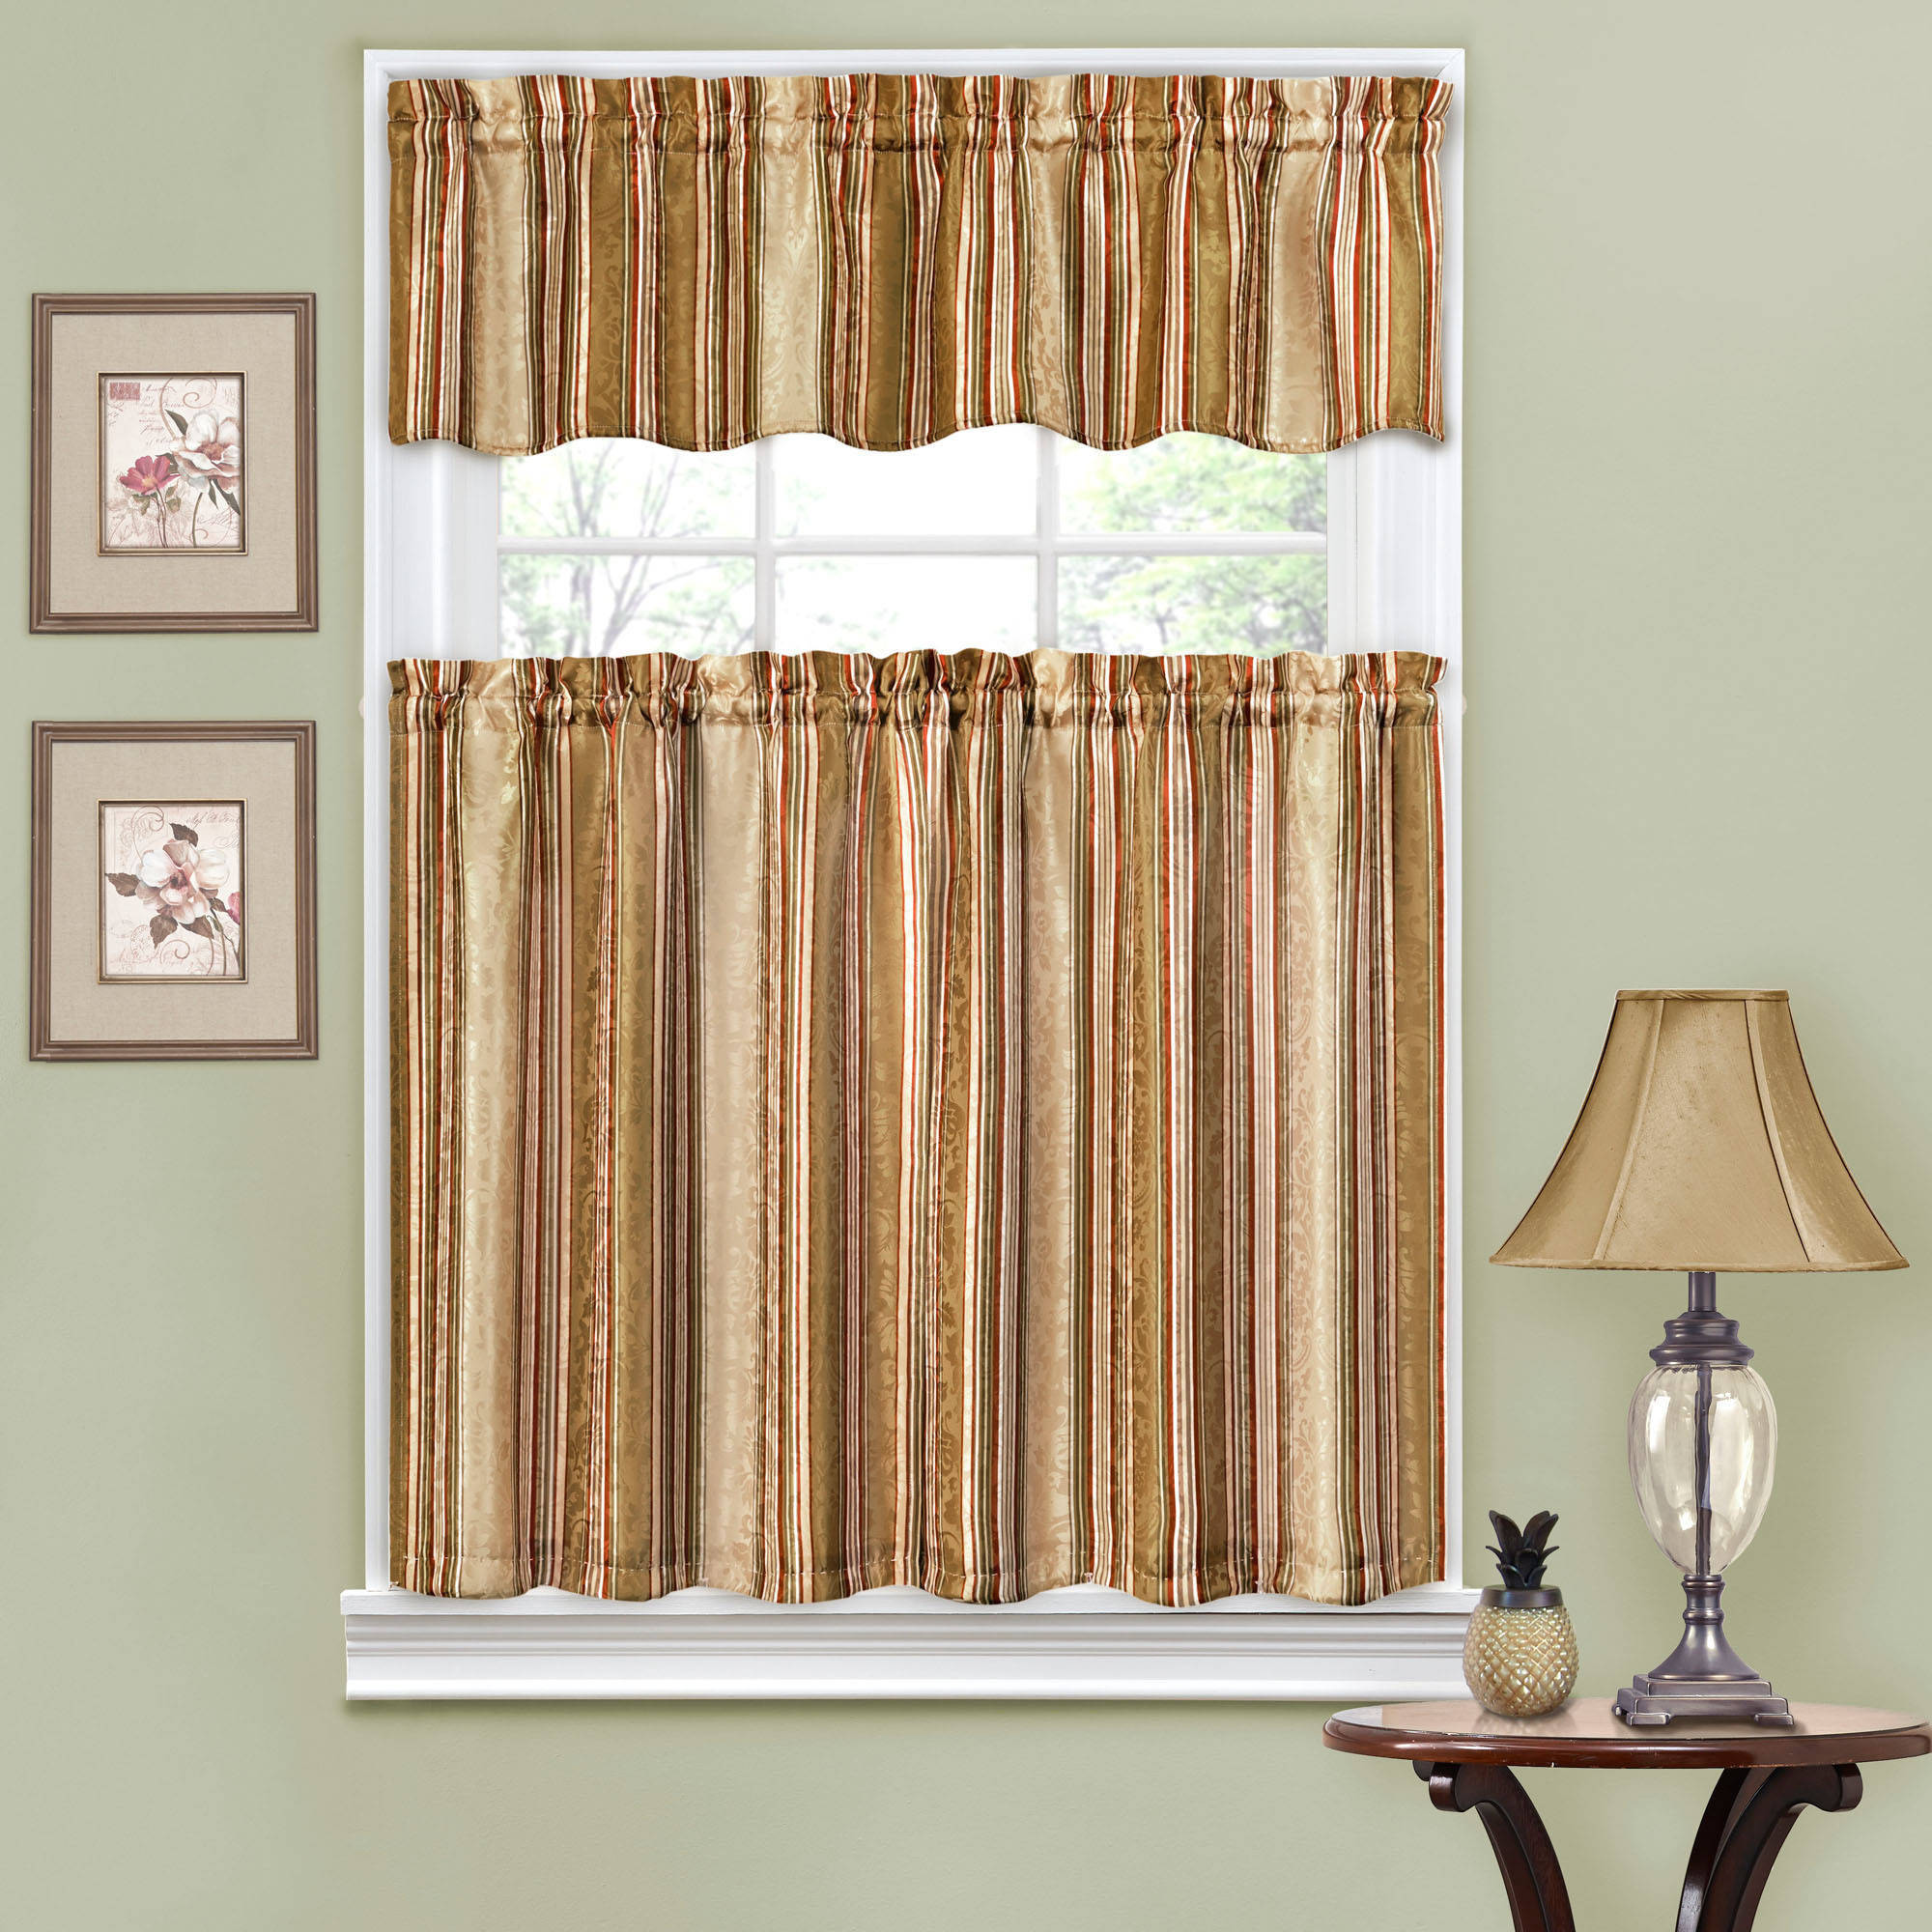 amazing Kitchen Curtain And Valance Set Part - 8: Traditions by Waverly Stripe Ensemble Kitchen Curtain and Valance Set -  Walmart.com